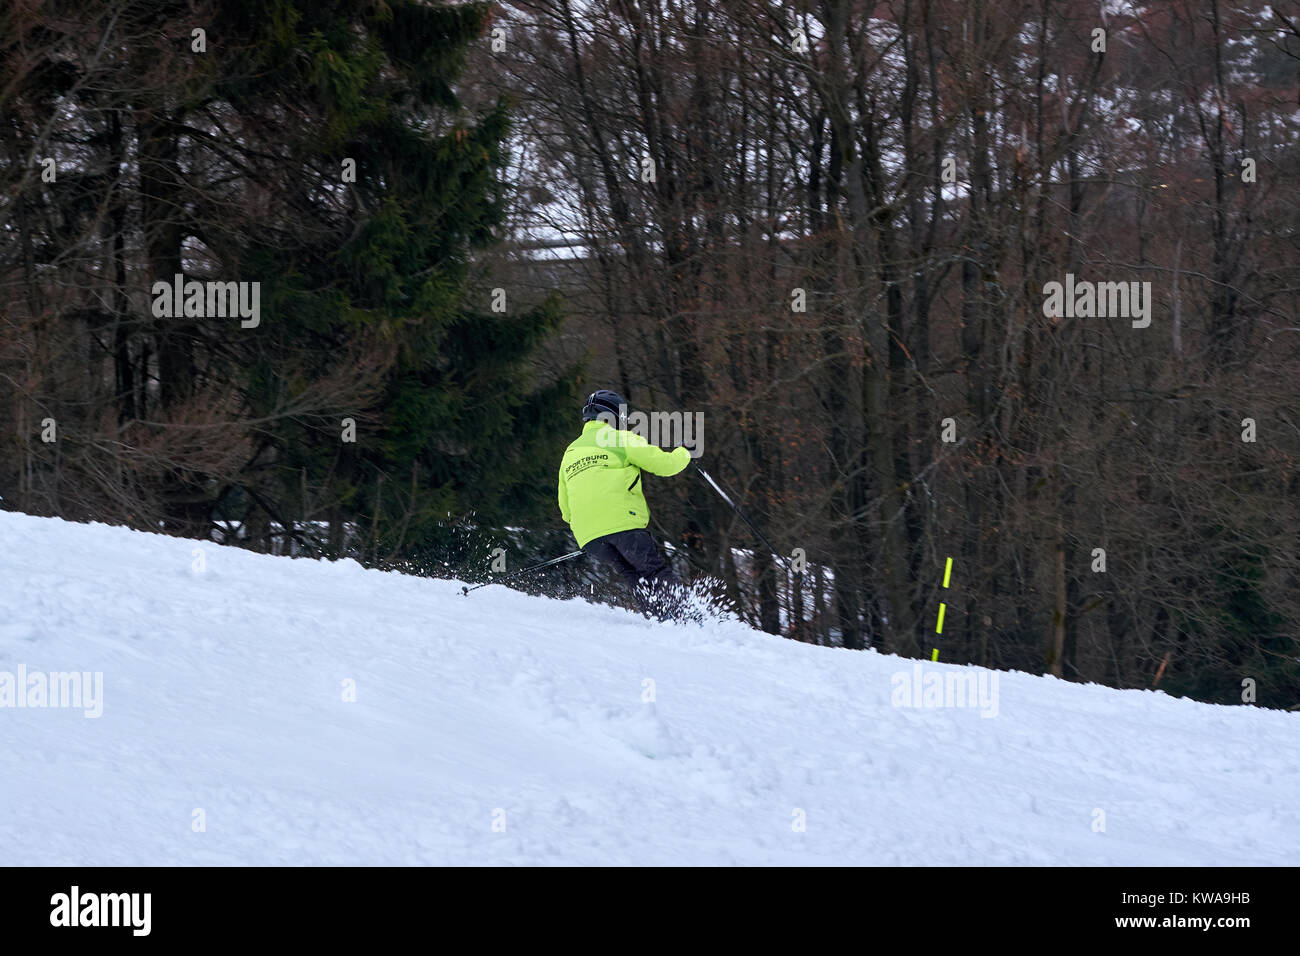 WINTERBERG, GERMANY - FEBRUARY 16, 2017: Man in fluorescent jacket taking a swing on a piste at Ski Carousel Winterberg - Stock Image